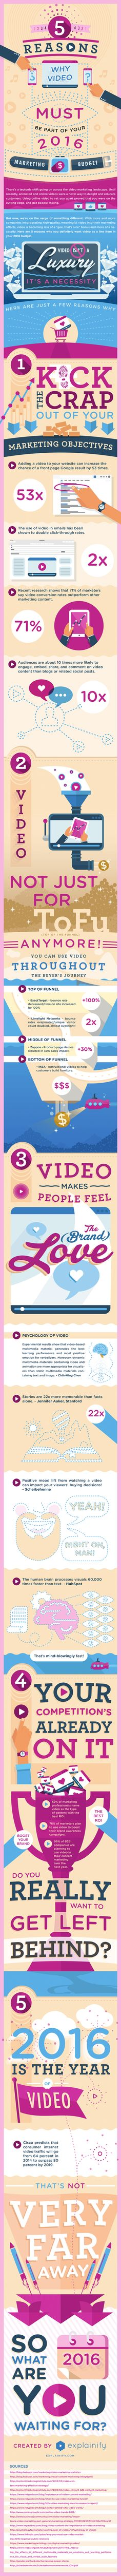 5 Reasons Video MUST Be Part of Your 2016 Marketing Budget [Infographic]